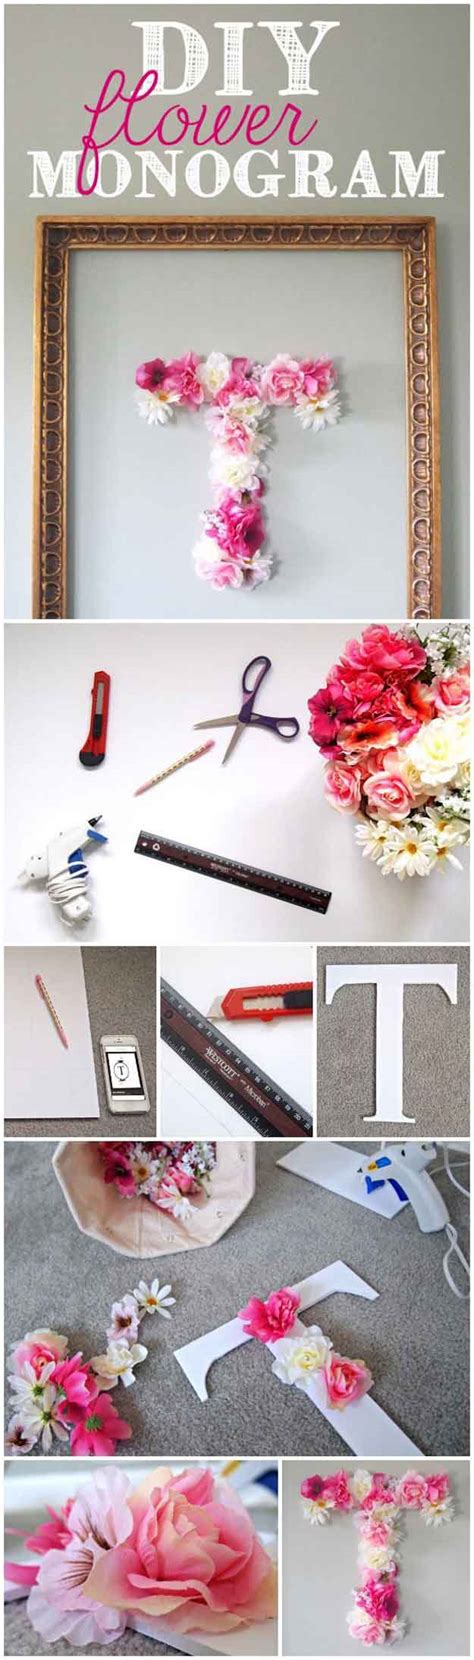 37 insanely bedroom ideas for diy decor crafts